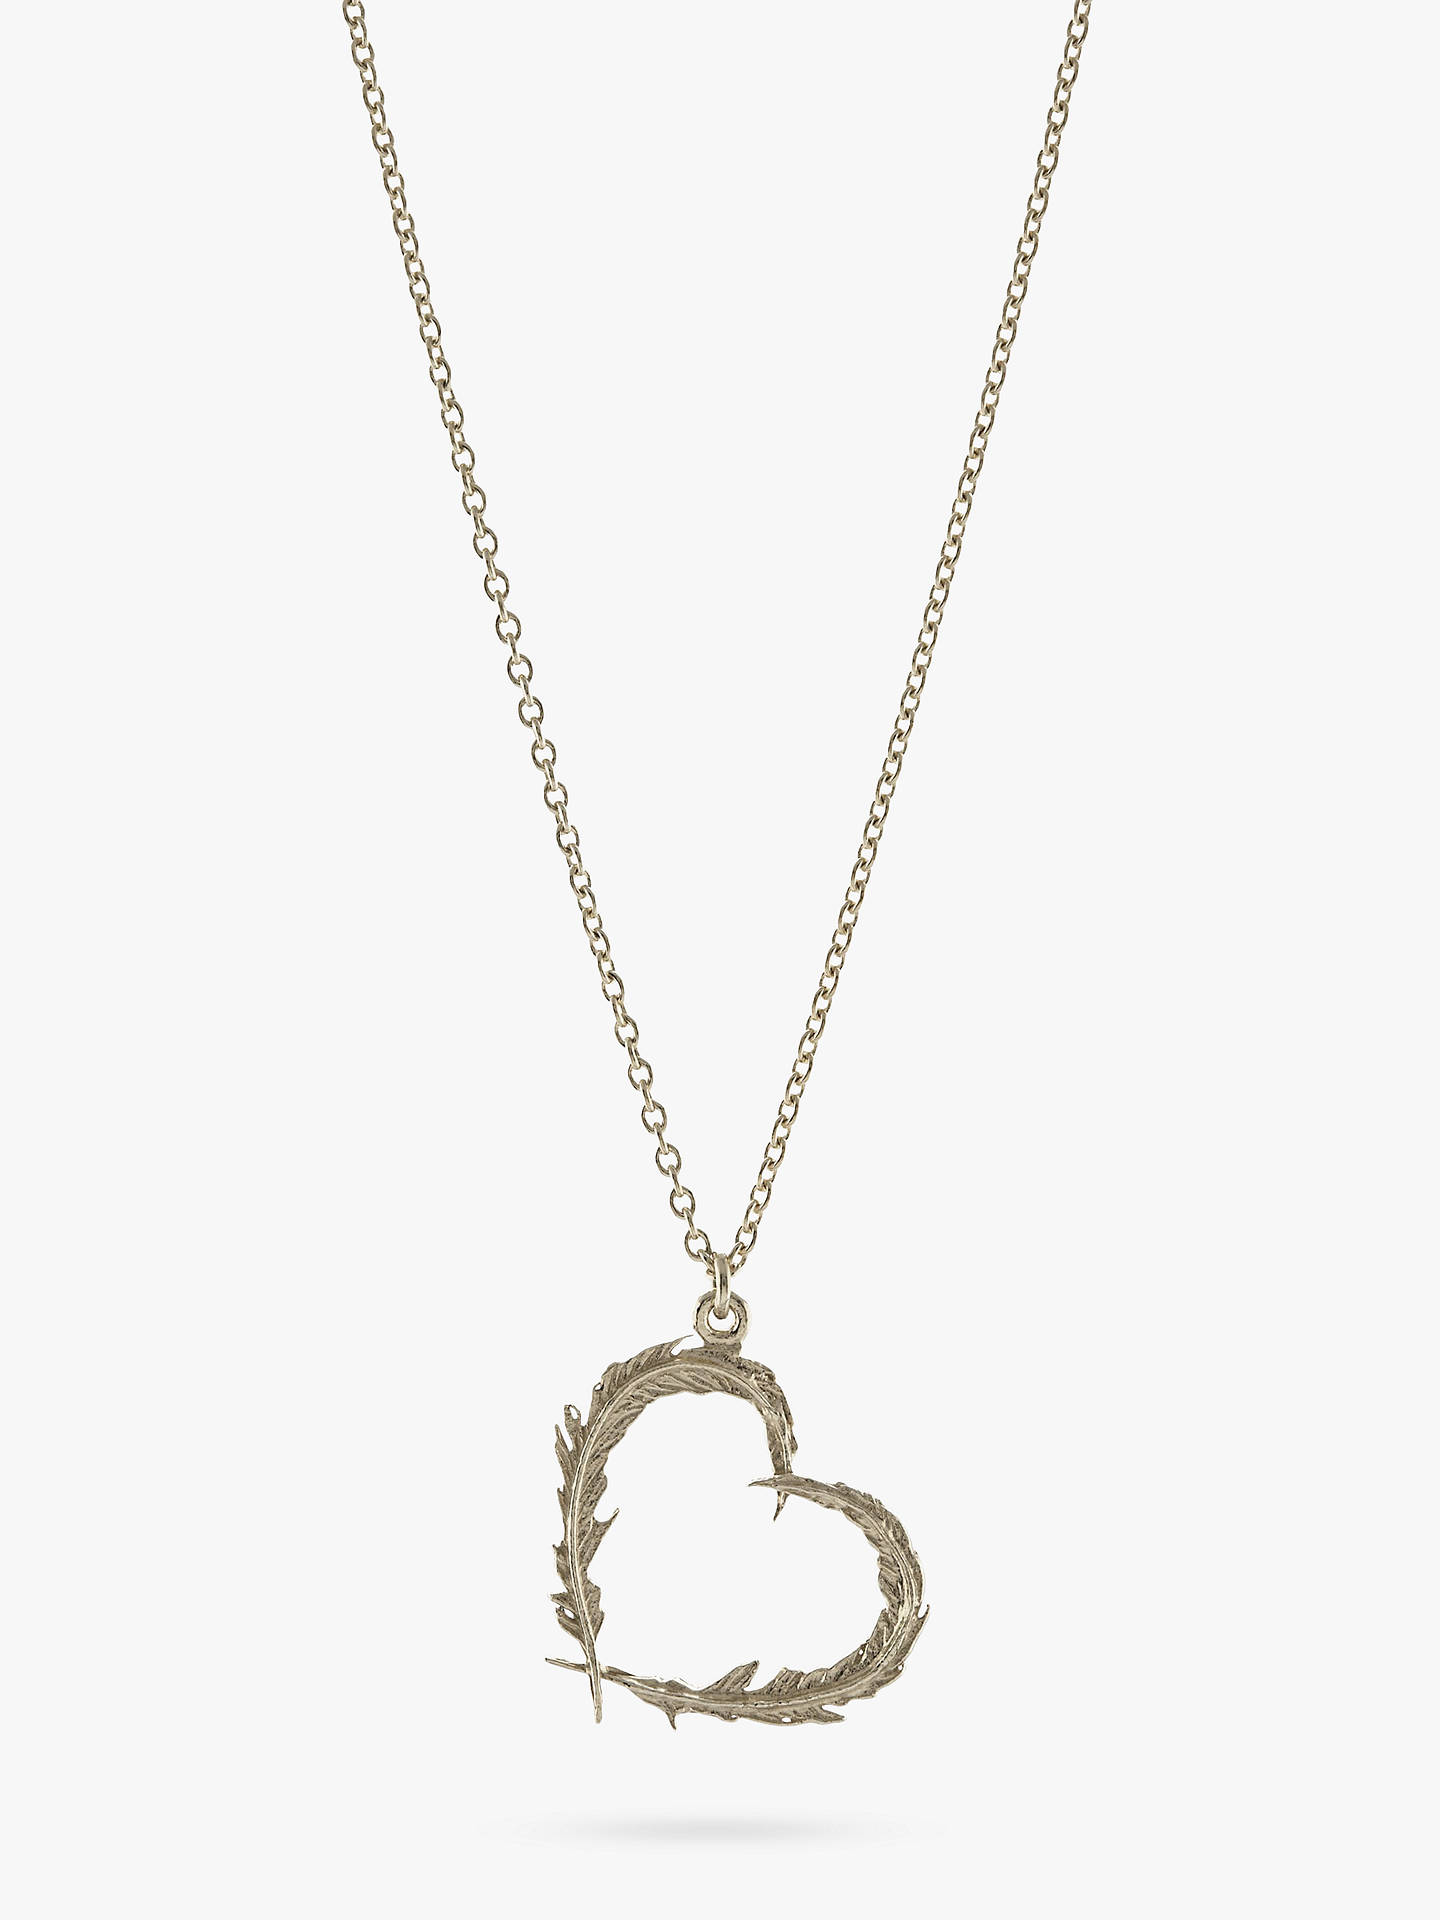 BuyAlex Monroe Sterling Silver Open Heart Leaves Pendant Necklace, Silver Online at johnlewis.com